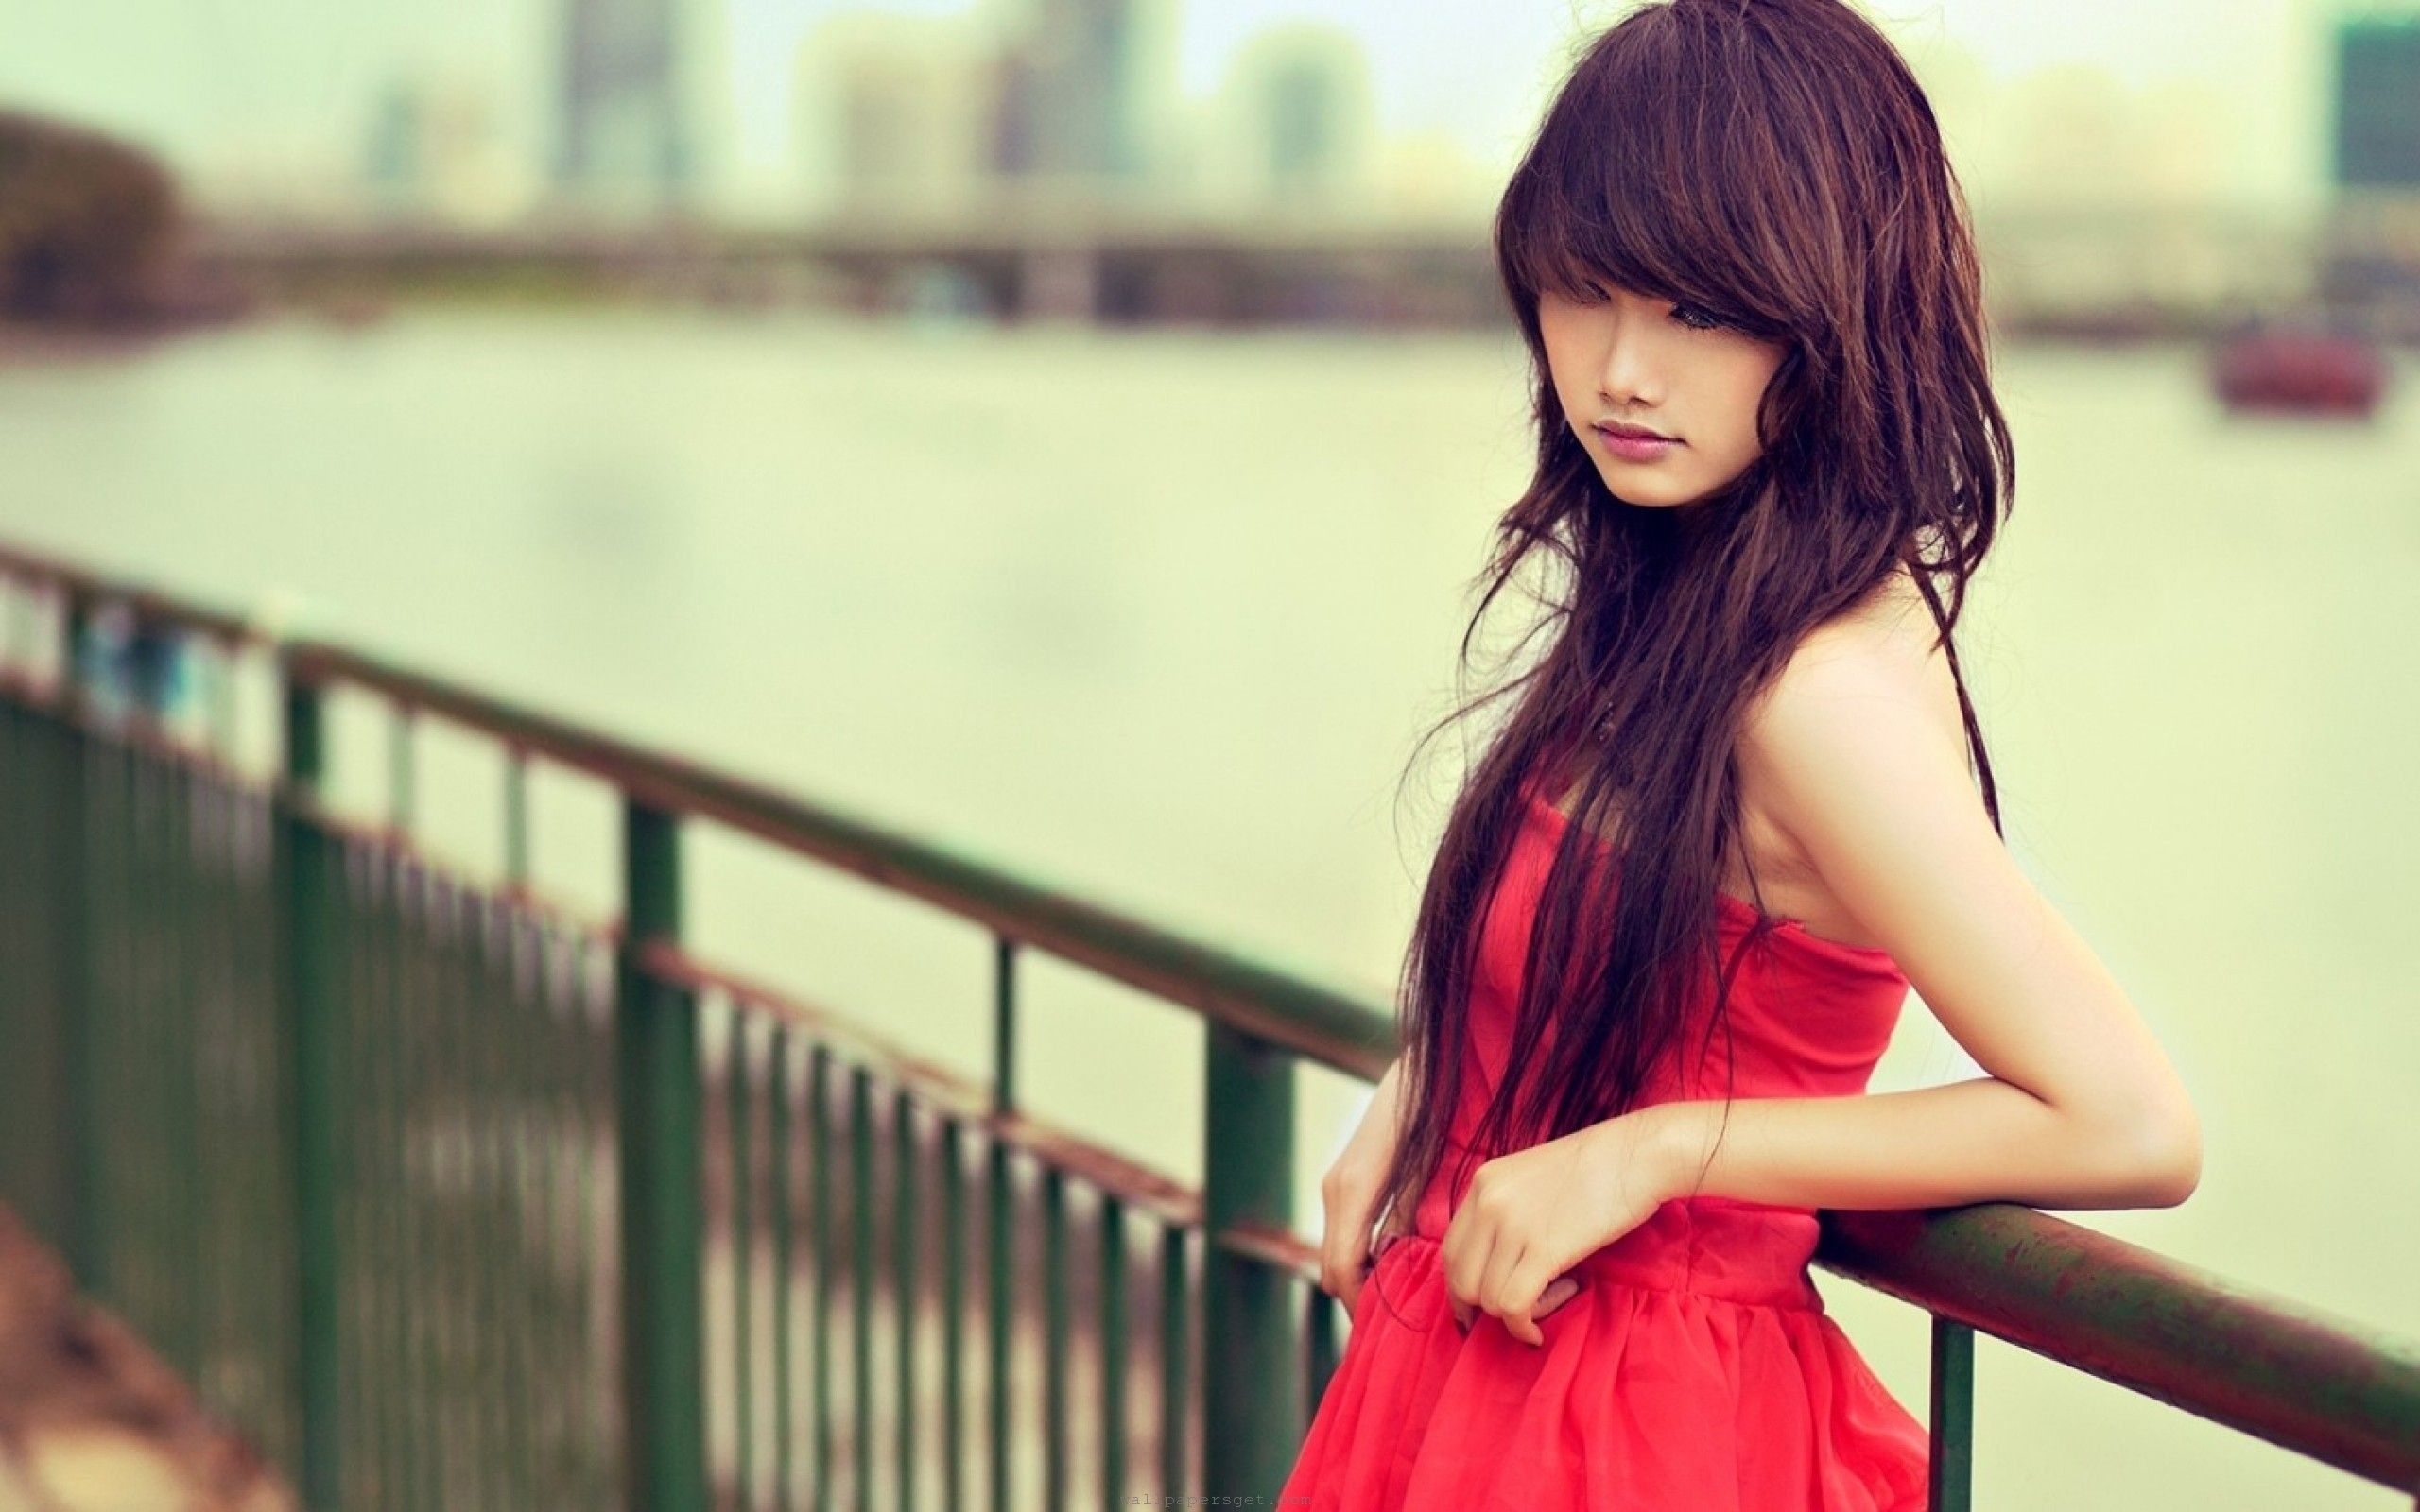 Pin On Cute And Beautiful Asian Girls Wallpapers Full Hd Free Download